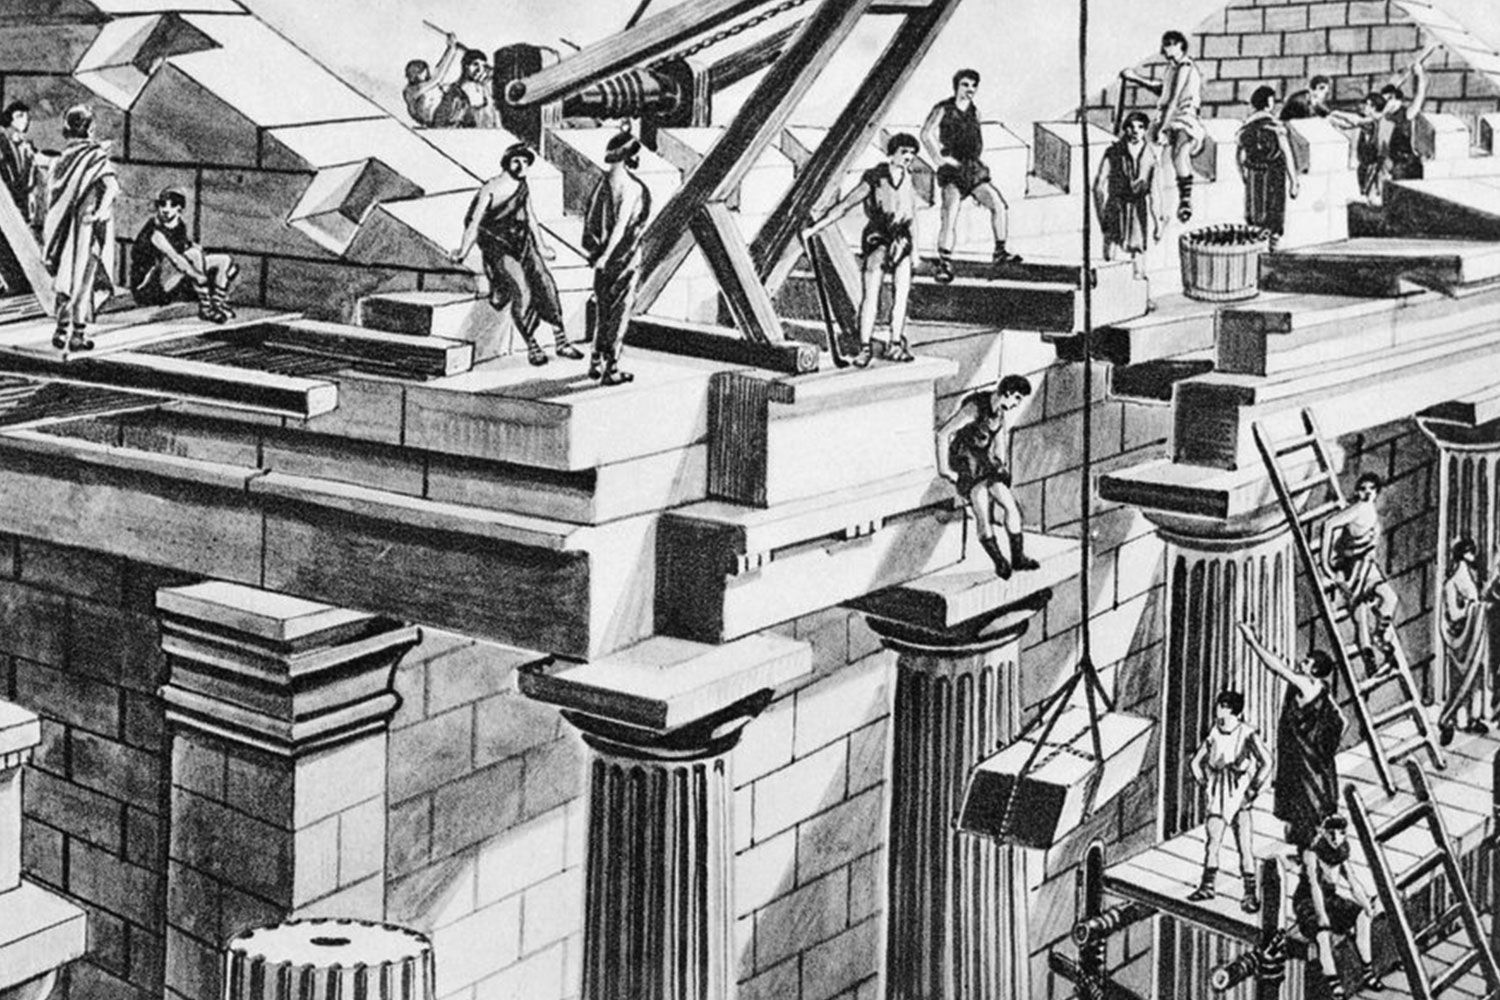 Slaves and cranes helped built Rome